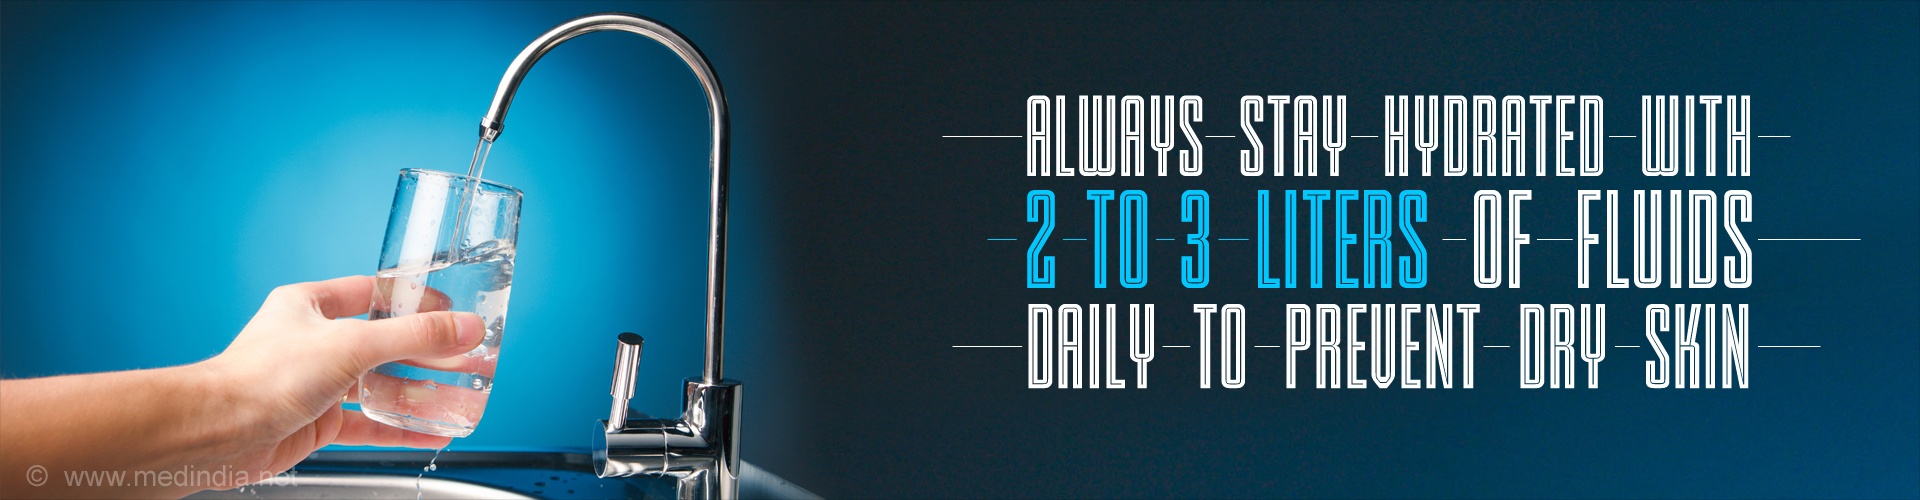 Always Stay Hydrated with 2 to 3 liters of Fluids Daily to Prevent Dry Skin